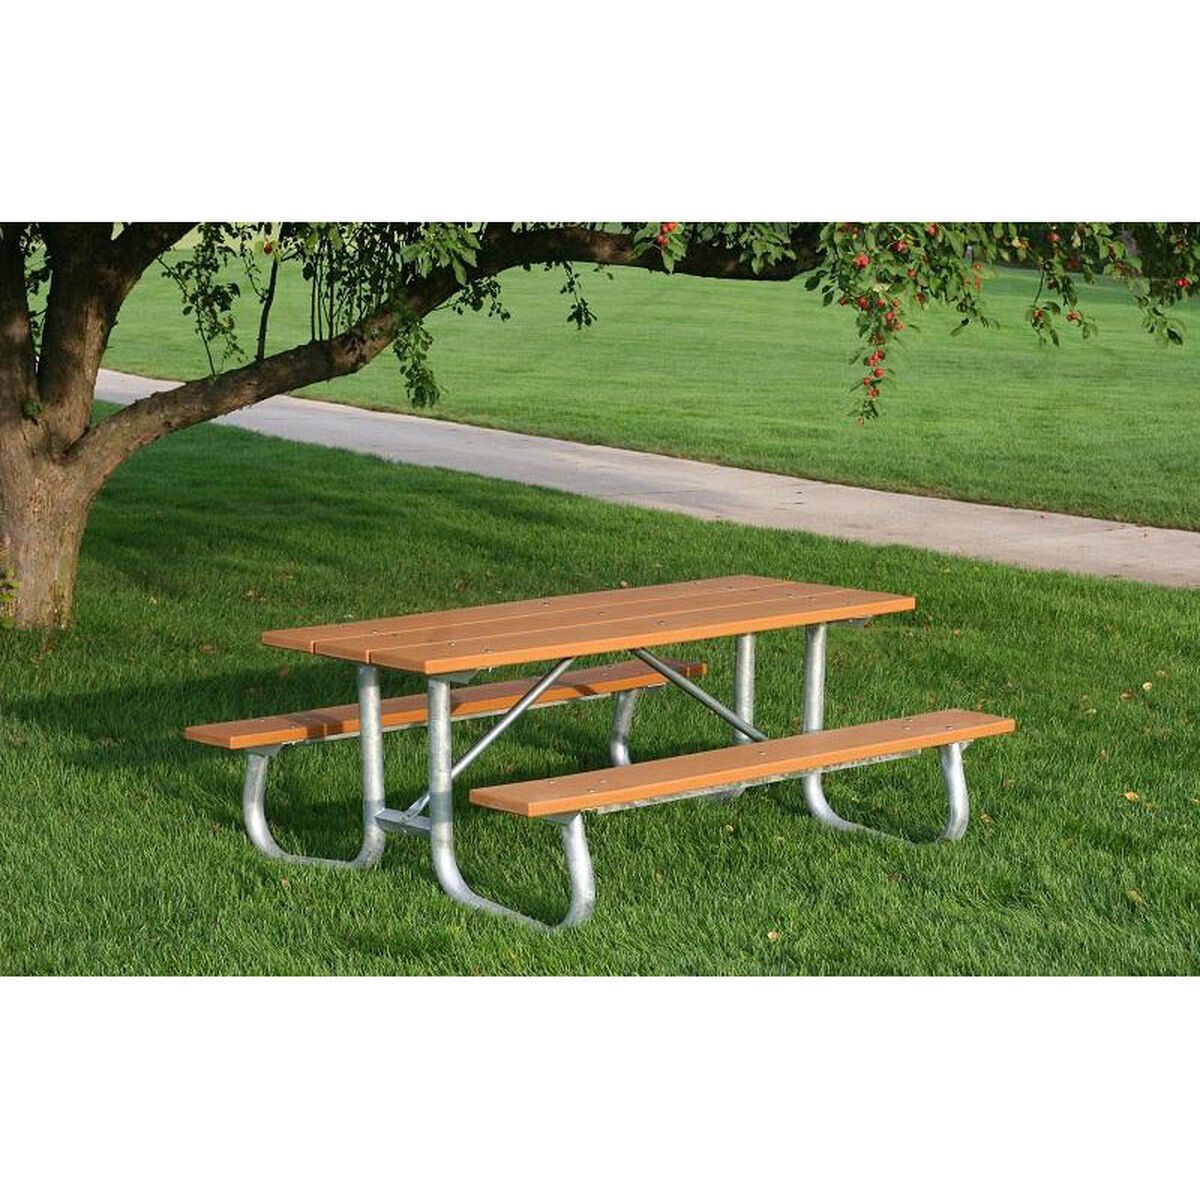 Galvanized Frame Picnic Table PBBLAGFPIC - Picnic table seats 8